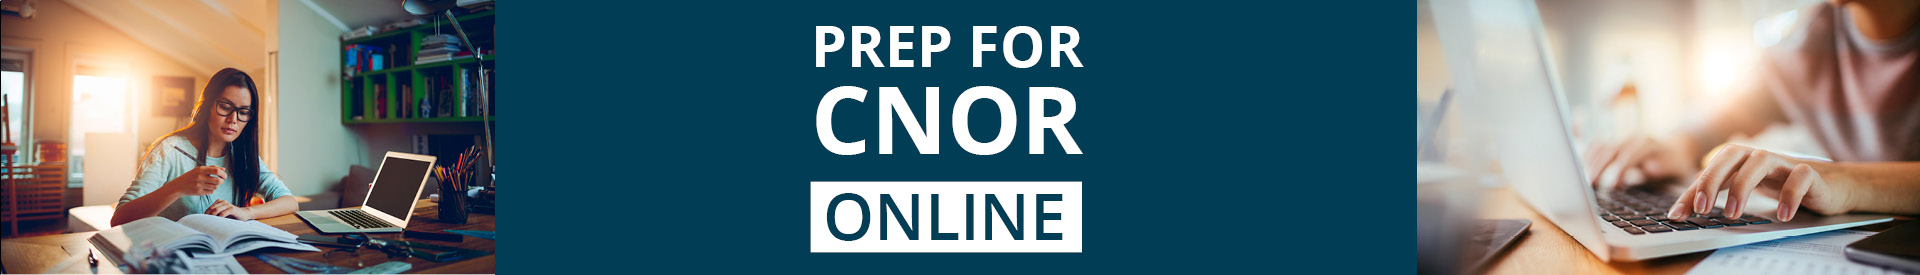 Aorn Education Online Courses Prep For Cnor Association Of